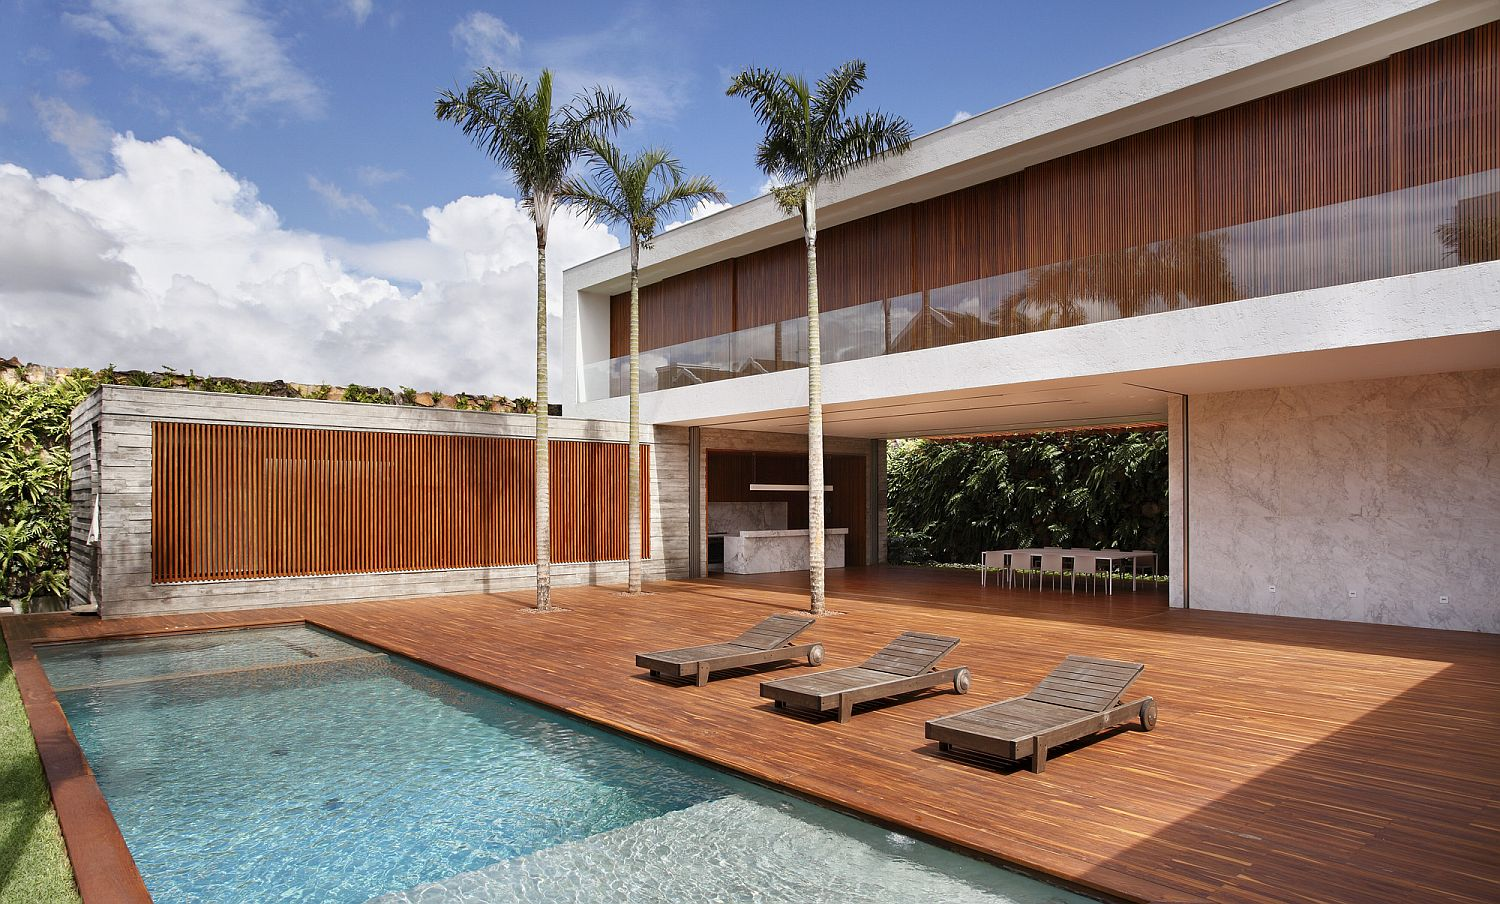 Wooden slats and Brise soleil give the central courtyard a stuning look Sun, Shade and a Spectacular Courtyard: Contemporary AN House in Brazil